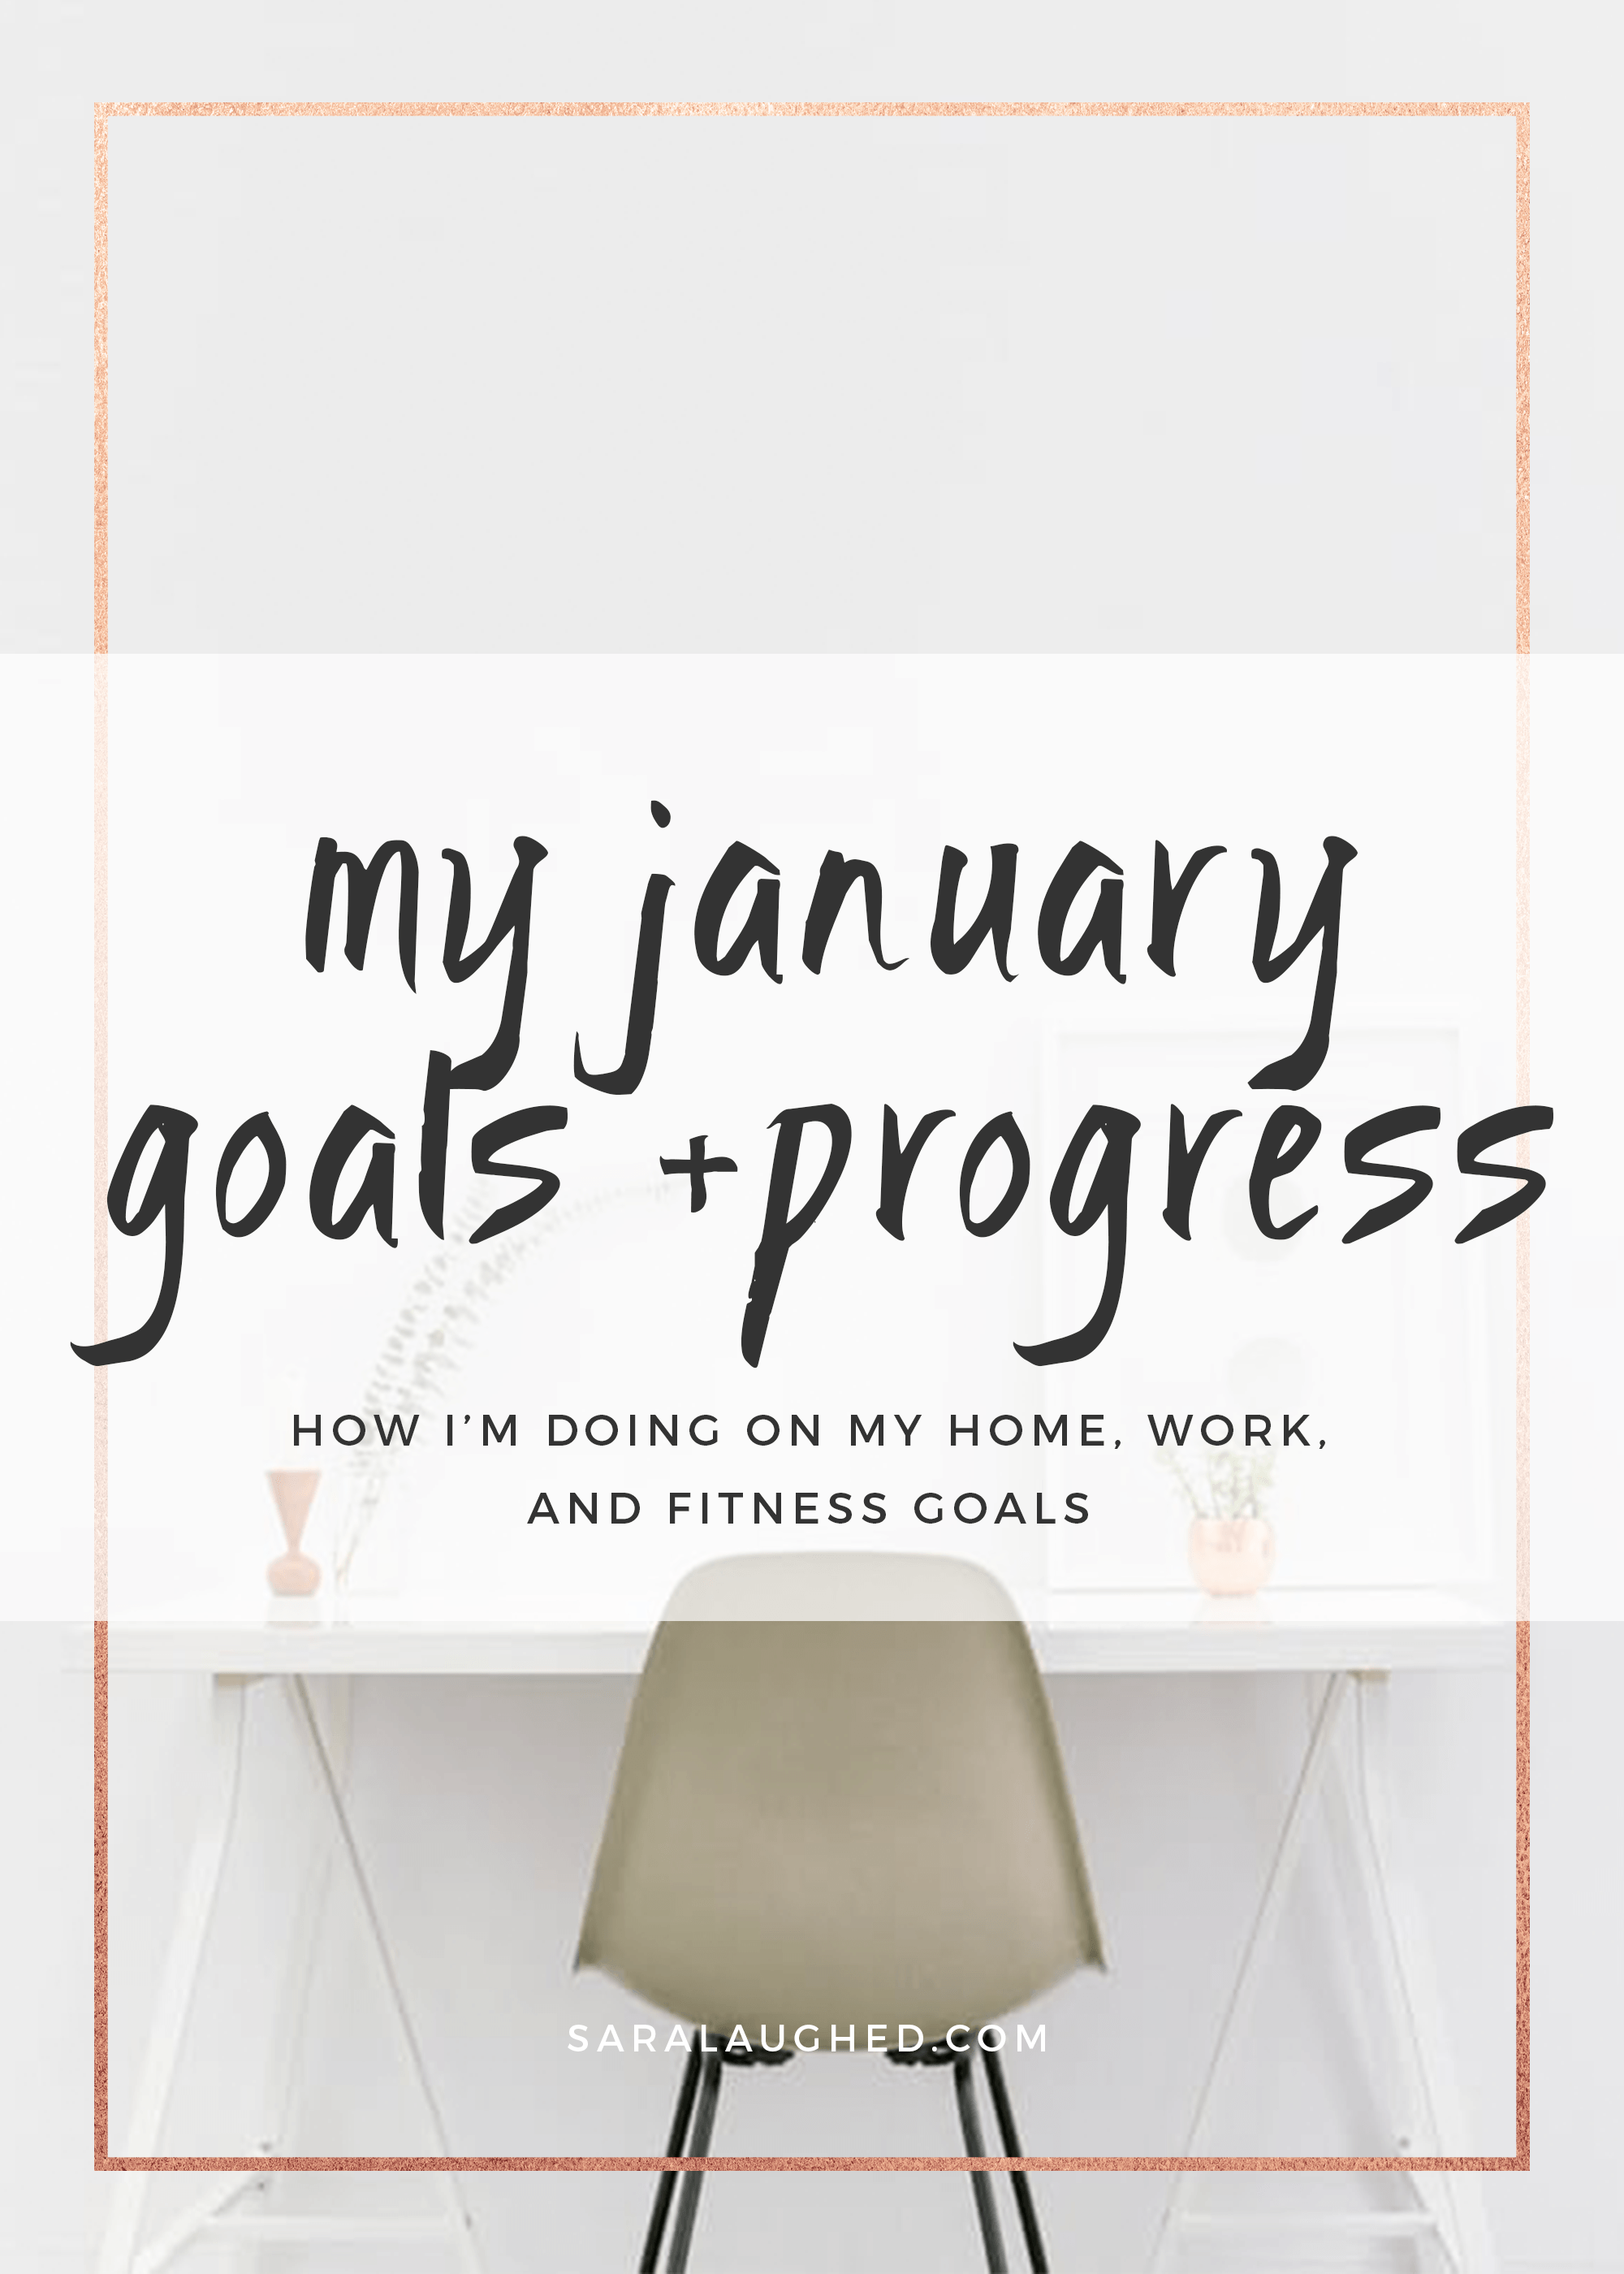 Check out my January goals and progress for 2017! Save for later and click to read more at saralaughed.com.